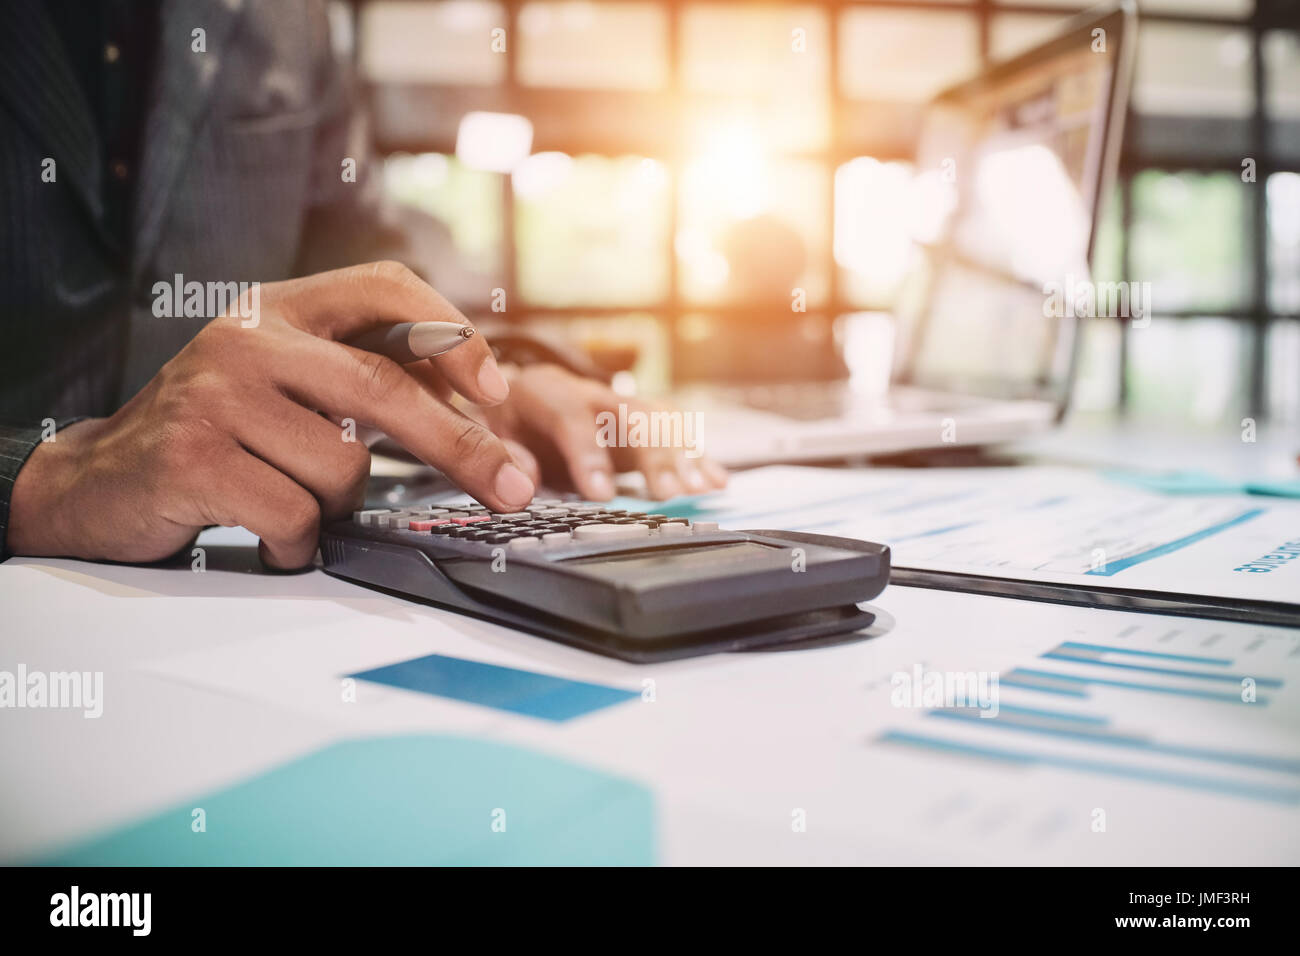 Insurance agent using calculator for medical insurance, the policy and explain insurance policy to customer. life insurance concept. - Stock Image